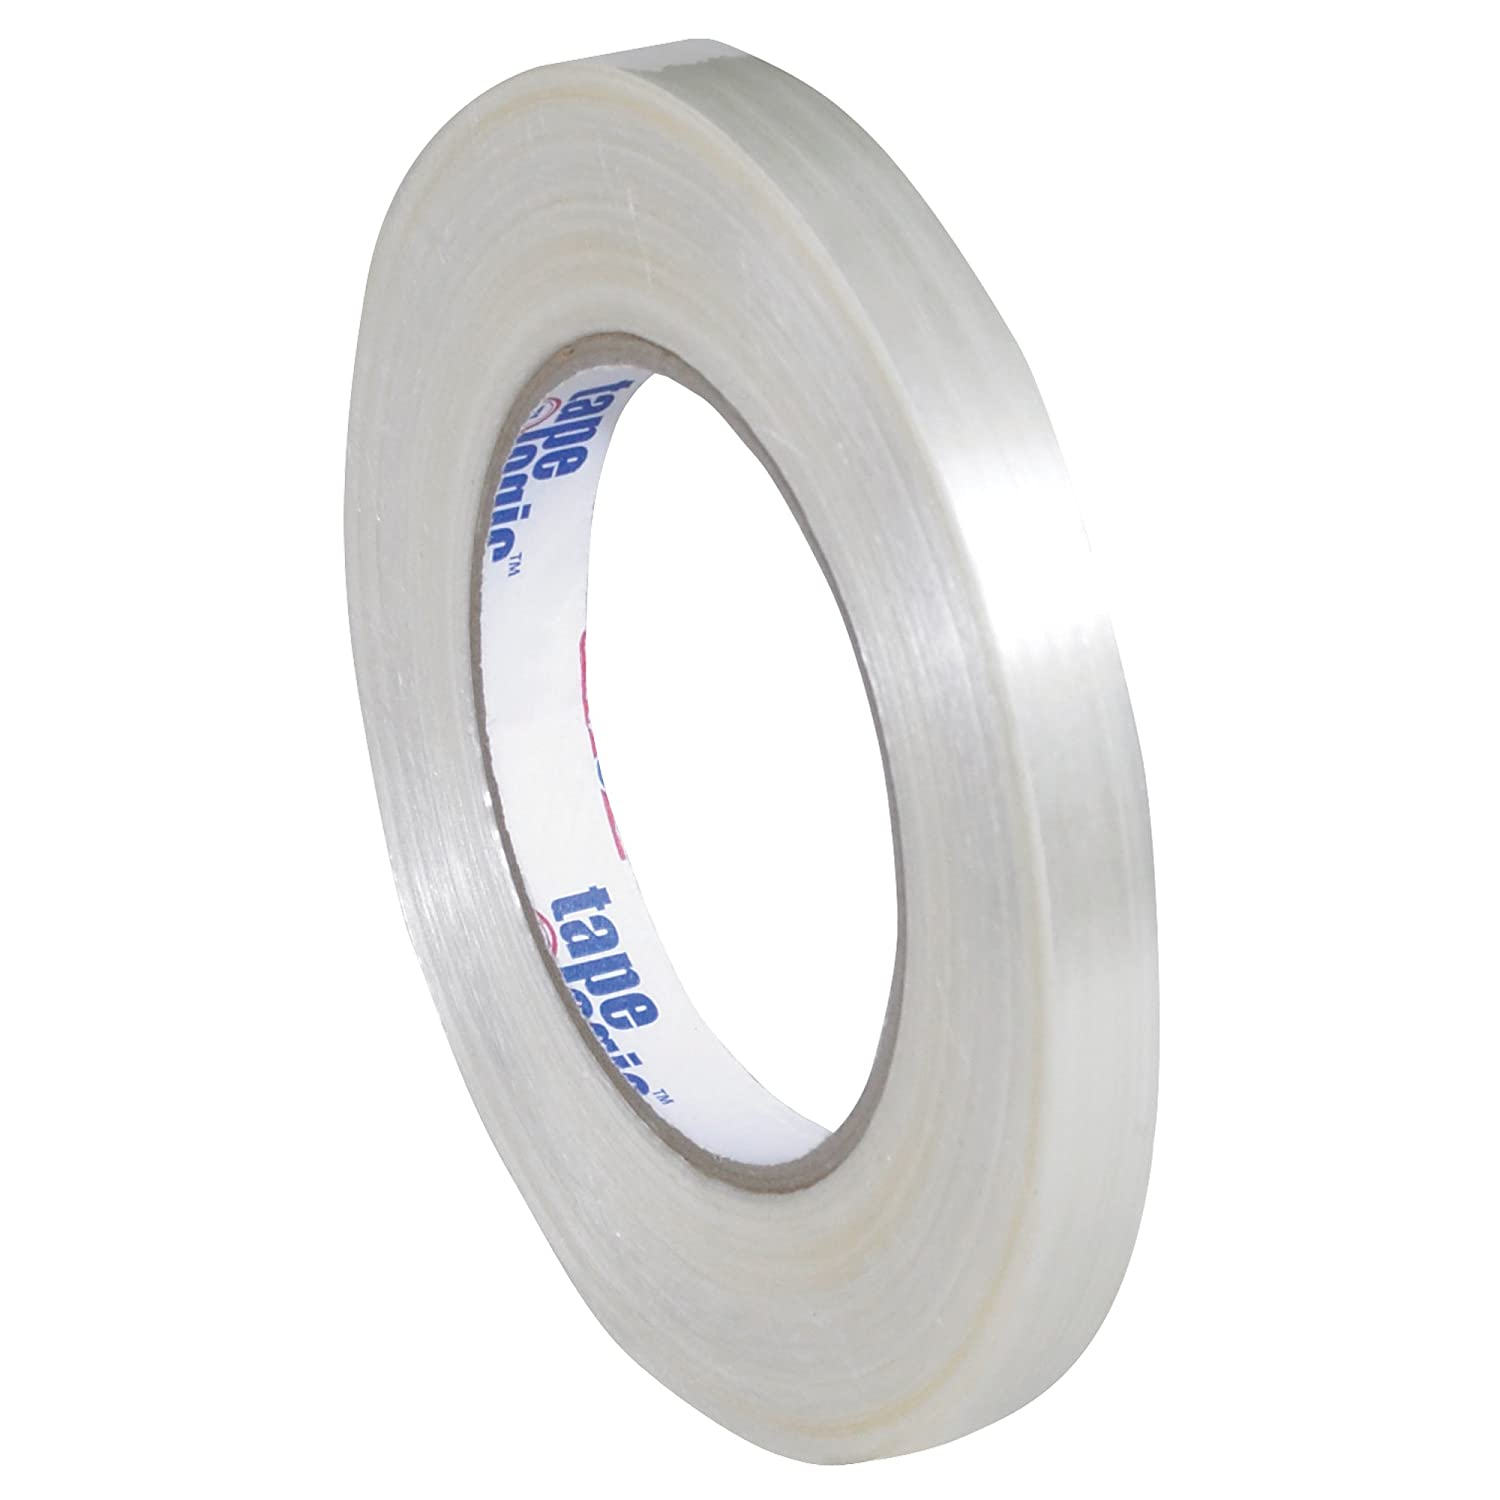 Clear Tape Logic 1500 Strapping Tape 12//Case 3//4 x 60 yds